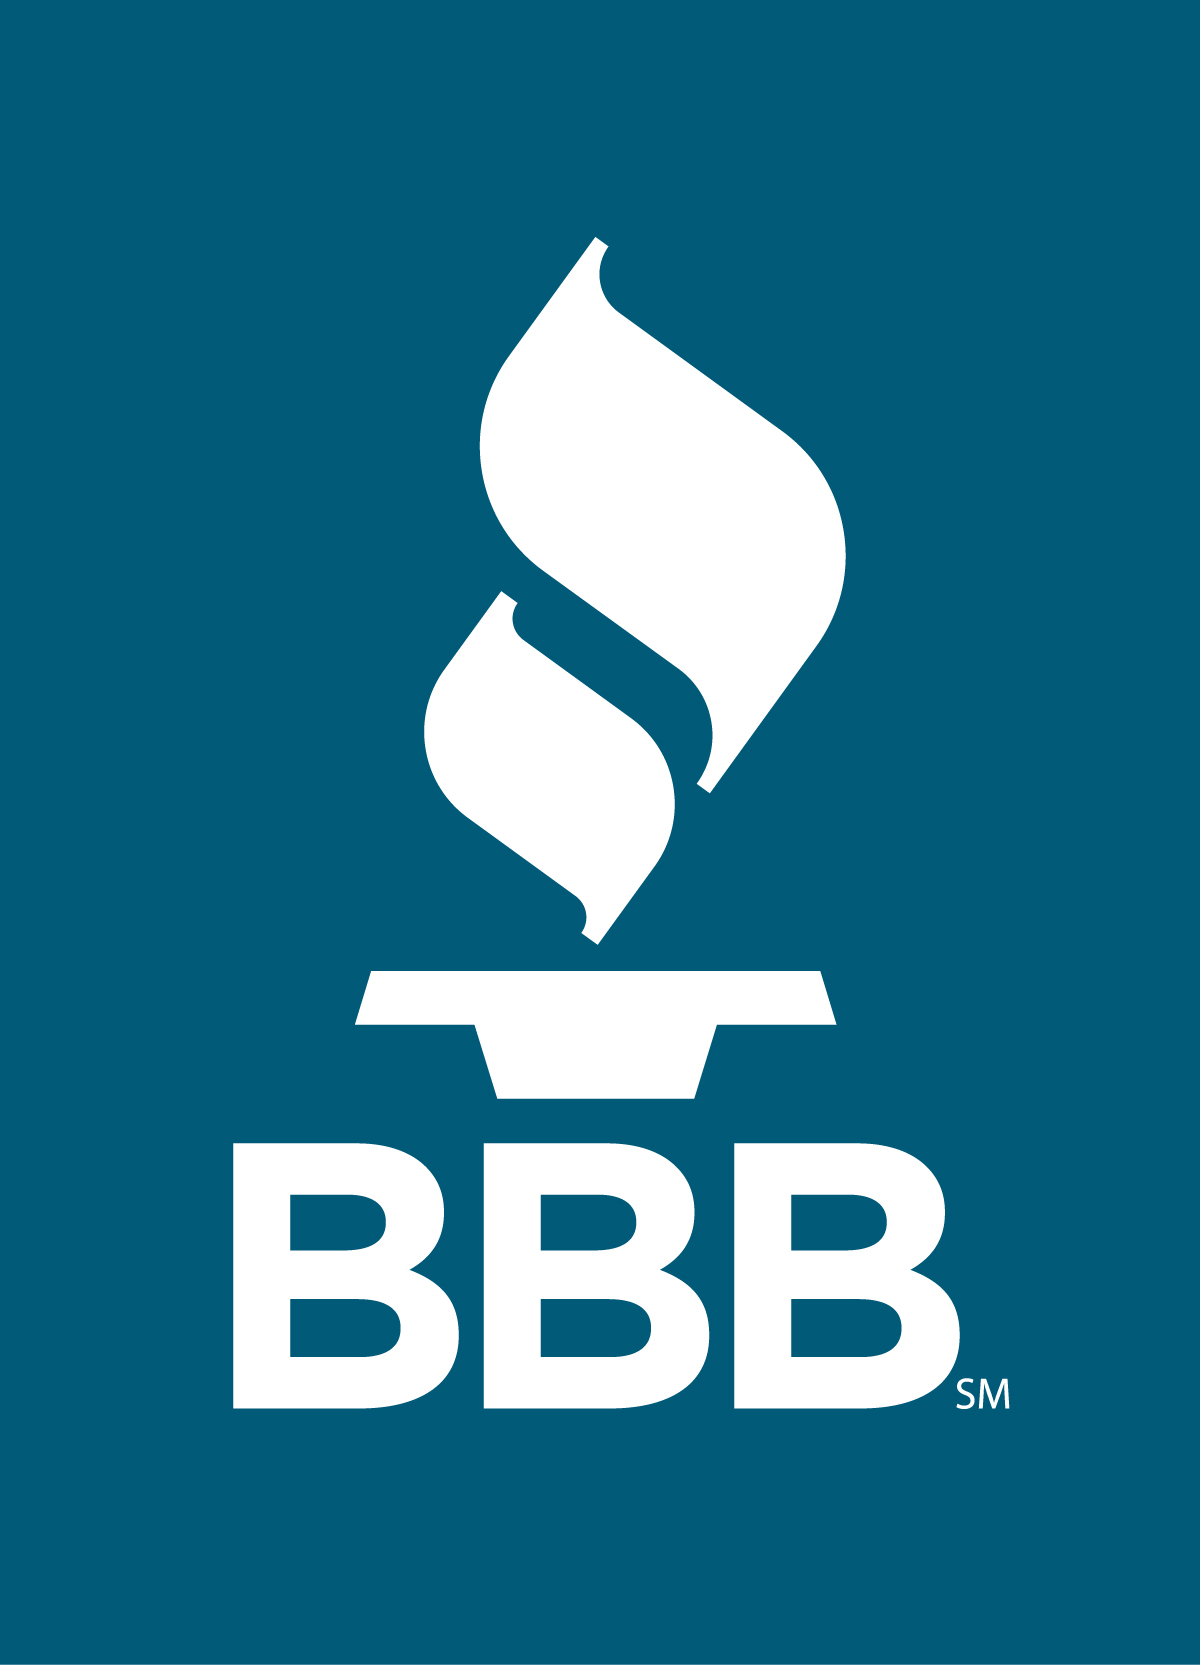 BBB_logo-white-on-blue